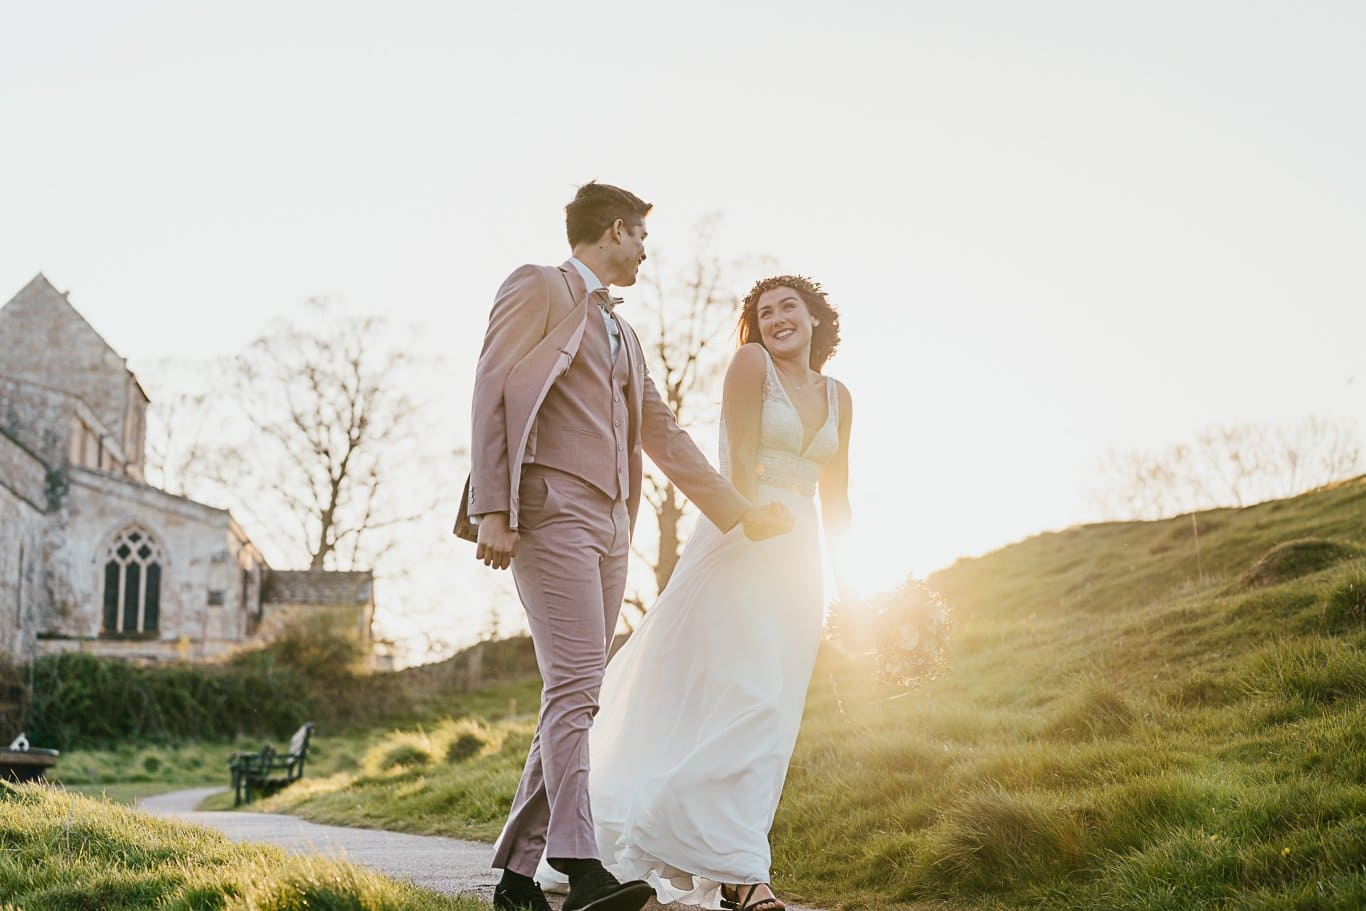 Couple by church at sunset